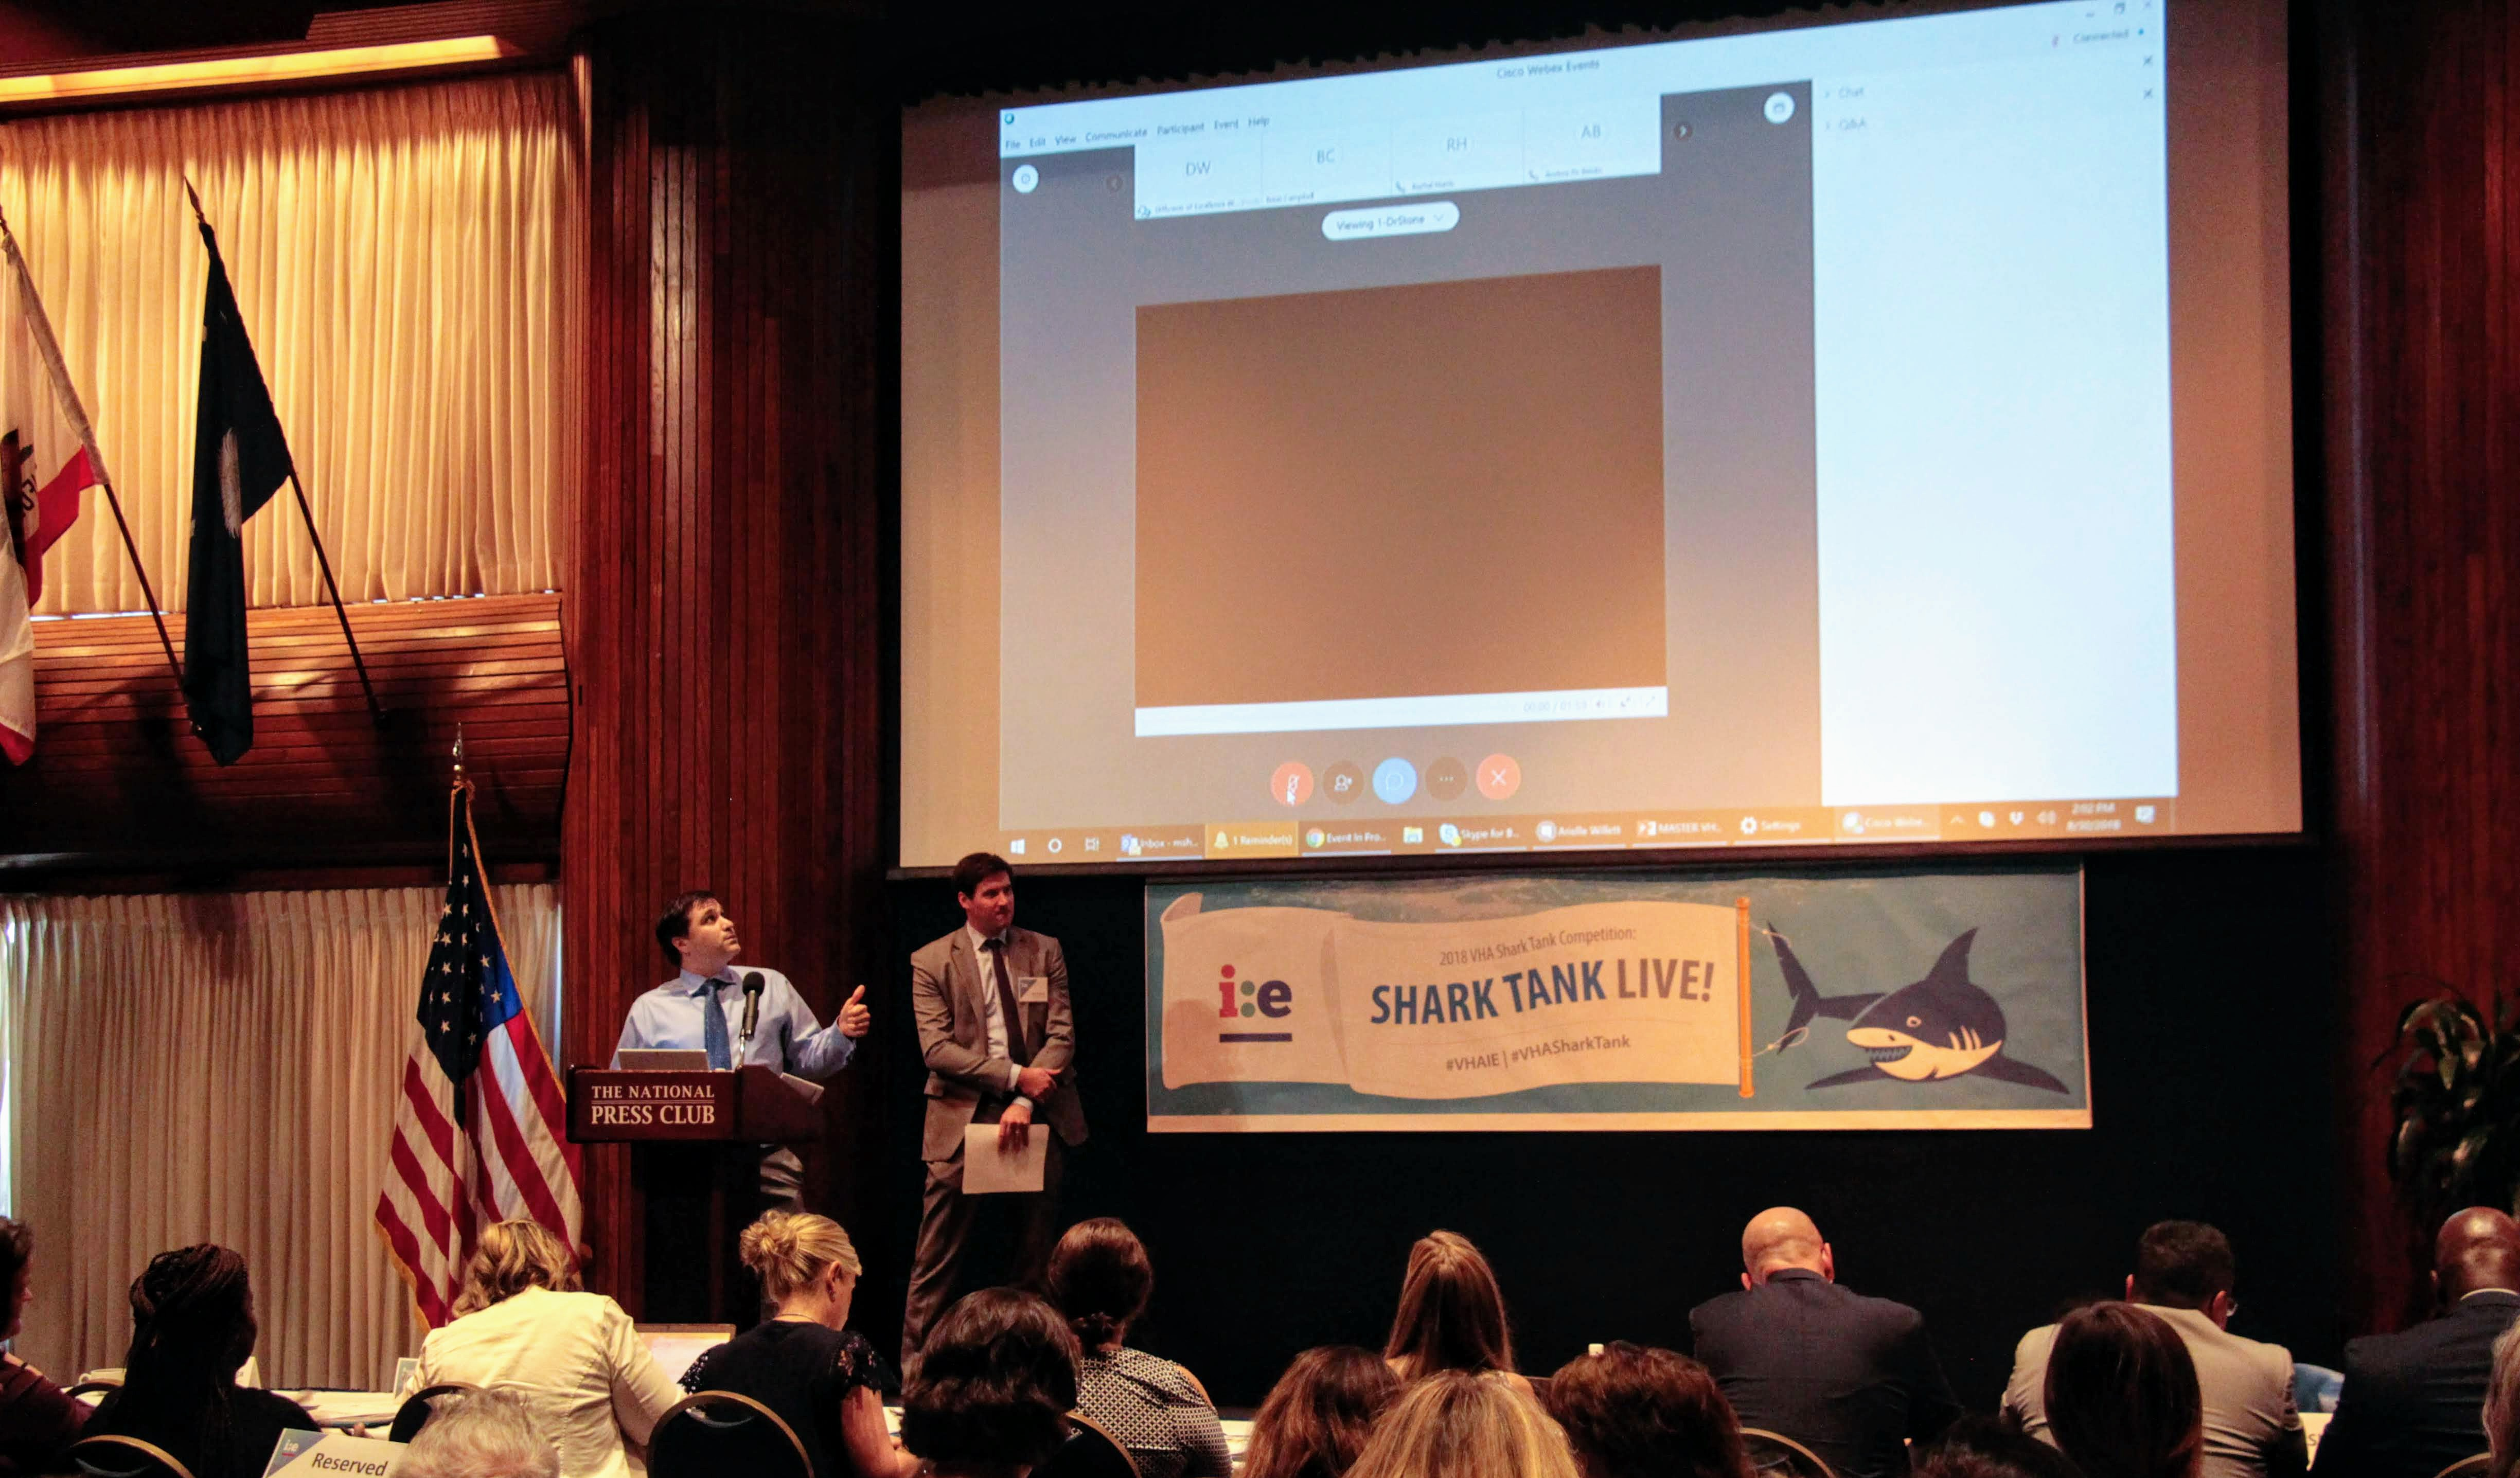 Men stand on a stage with a VHA Shark Tank banner